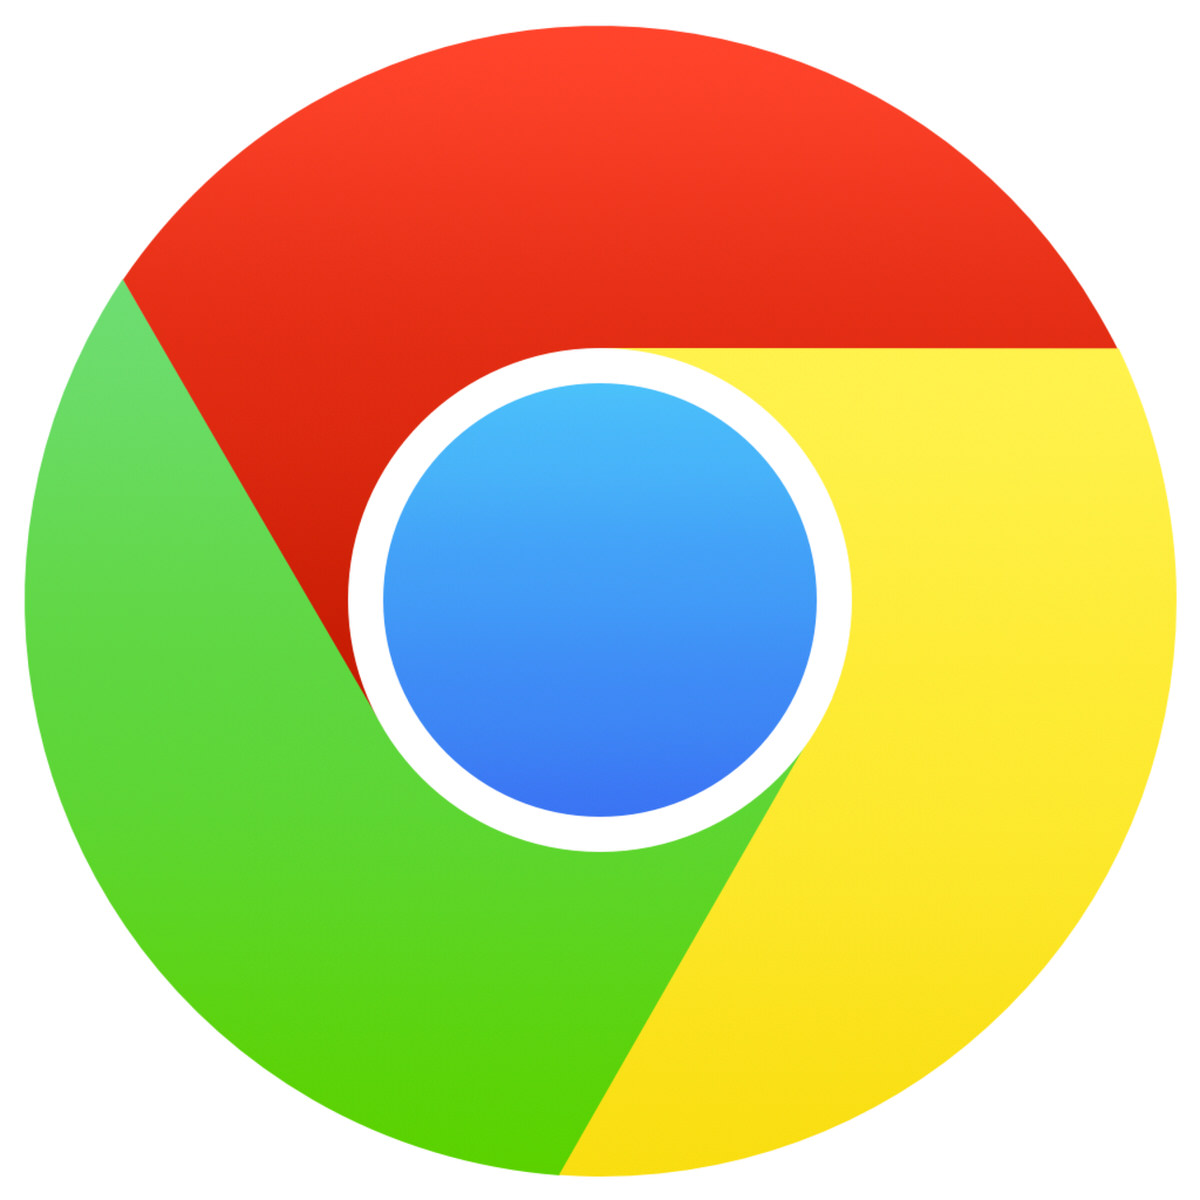 13 caratteri per mandare in crash Chrome